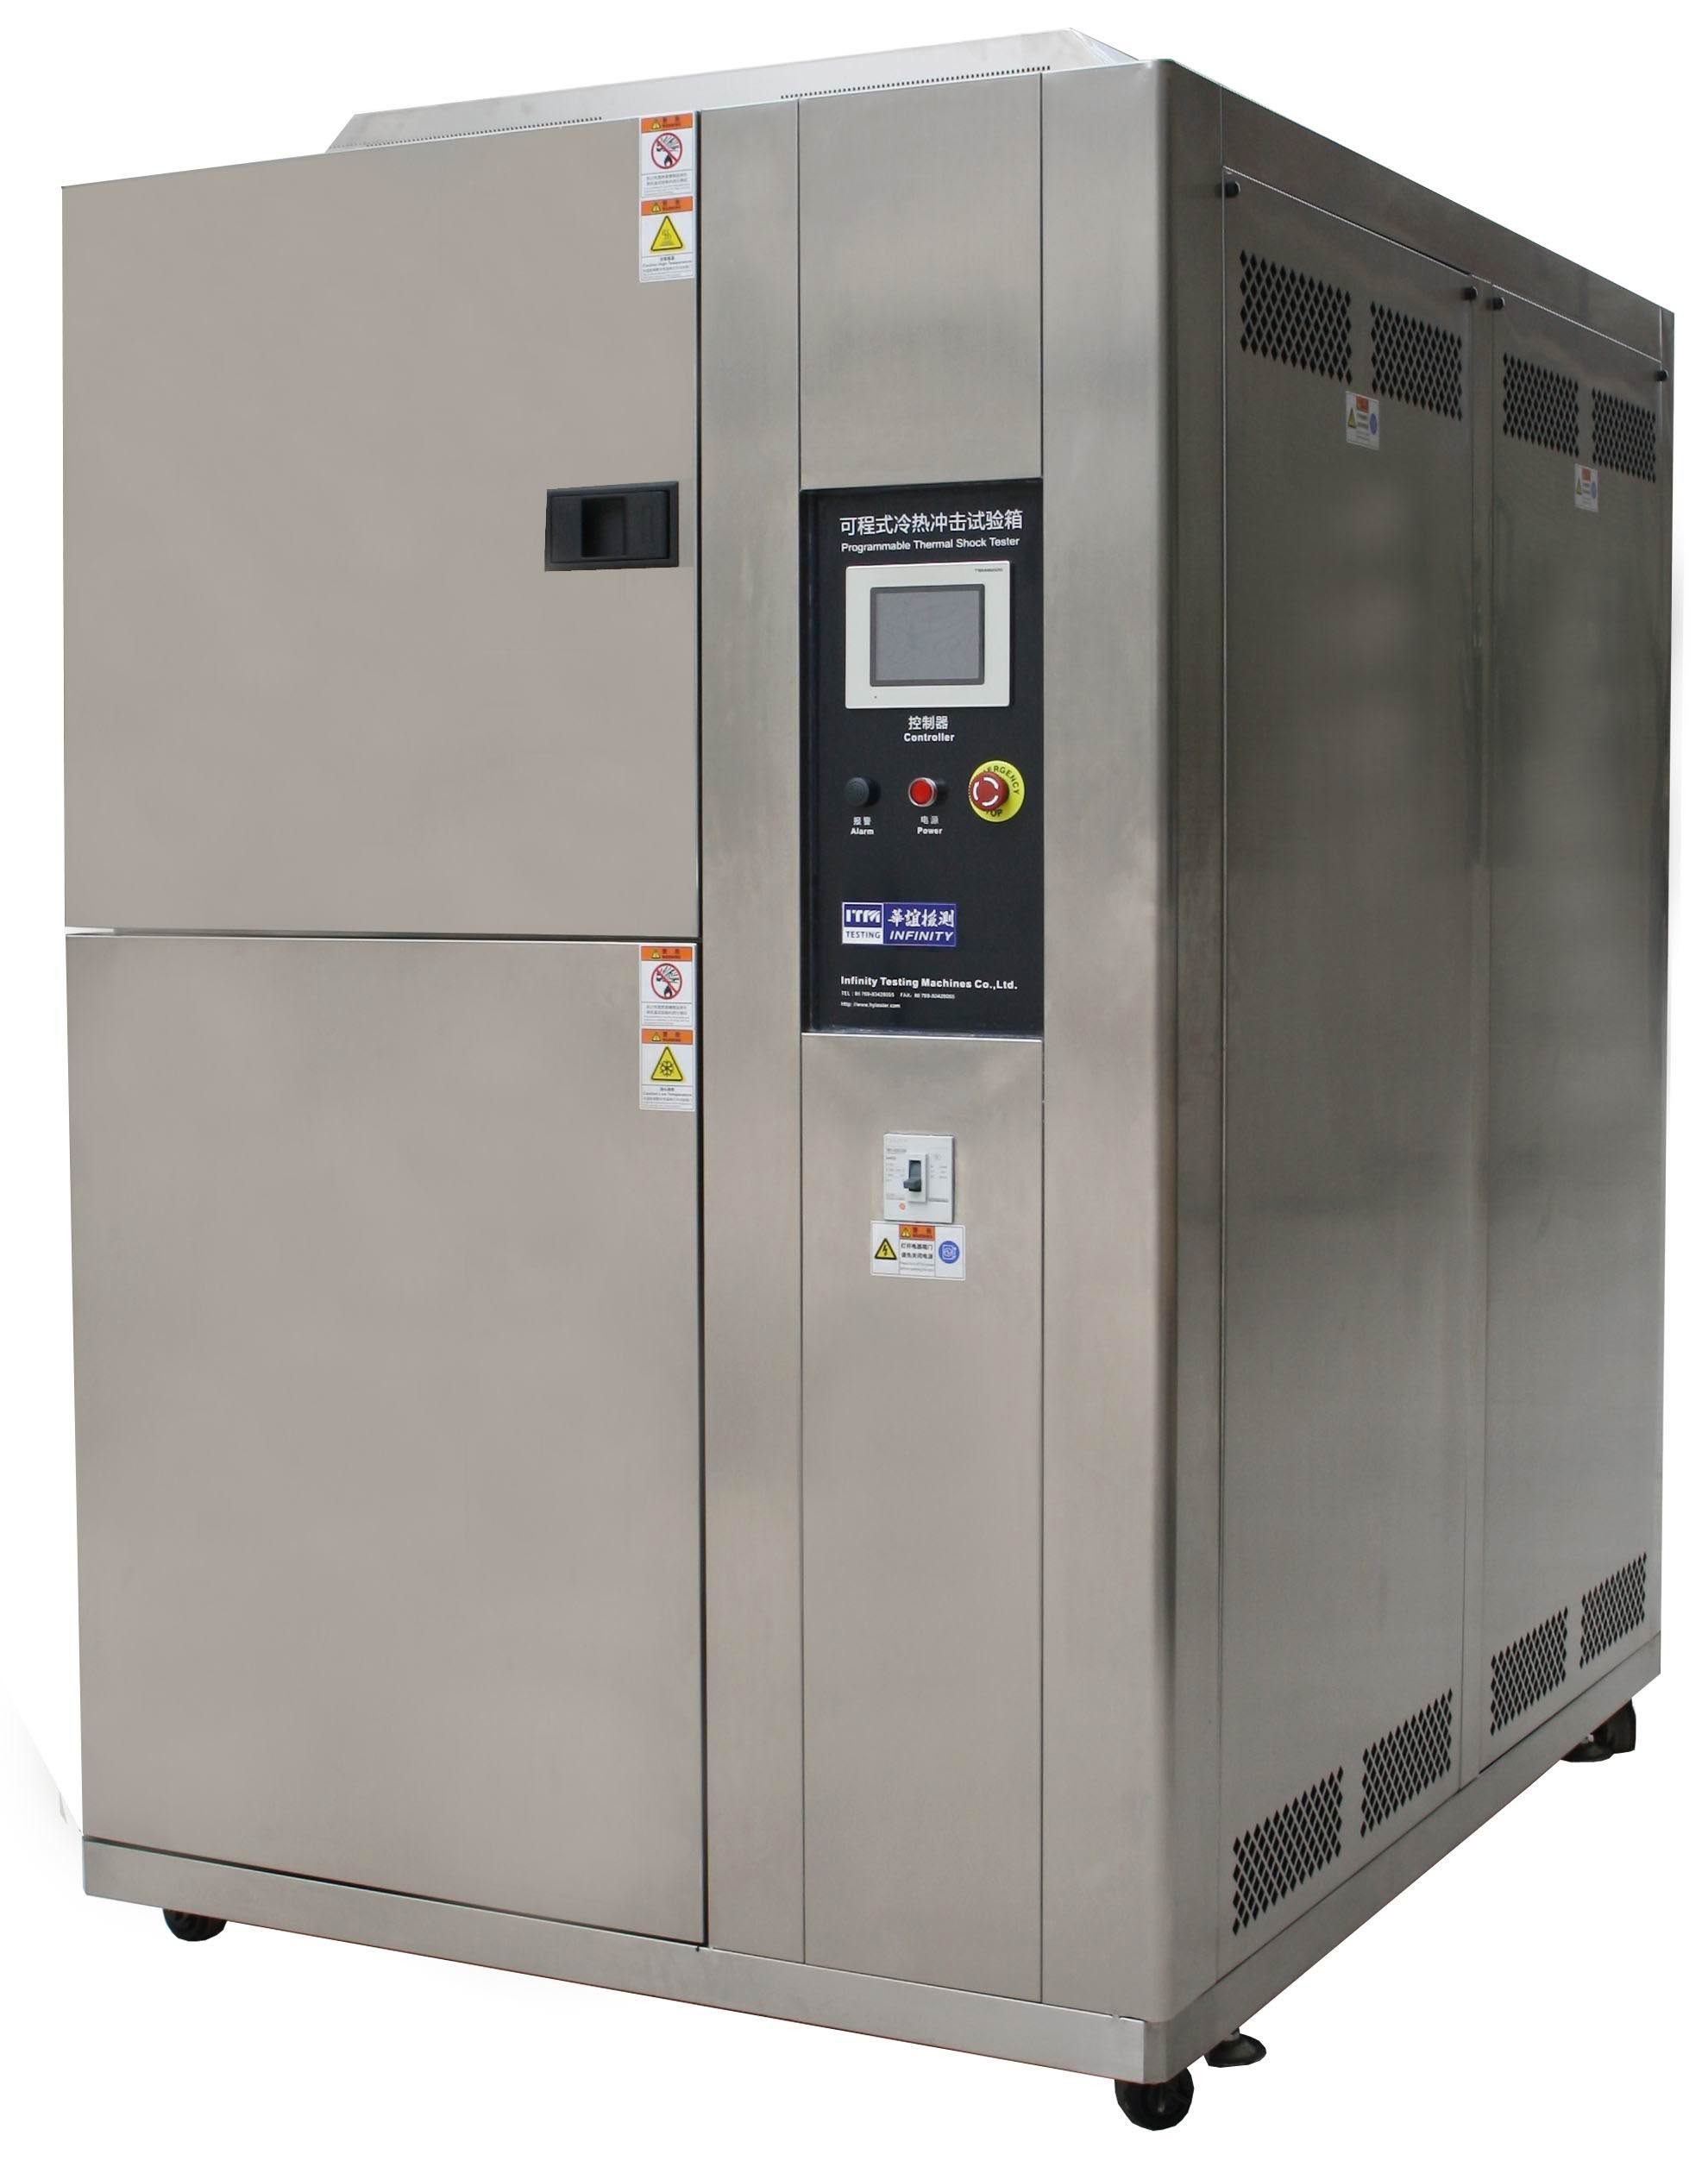 Thermal Shock Environmental Test Chambers For Temperature And Humidity Testing